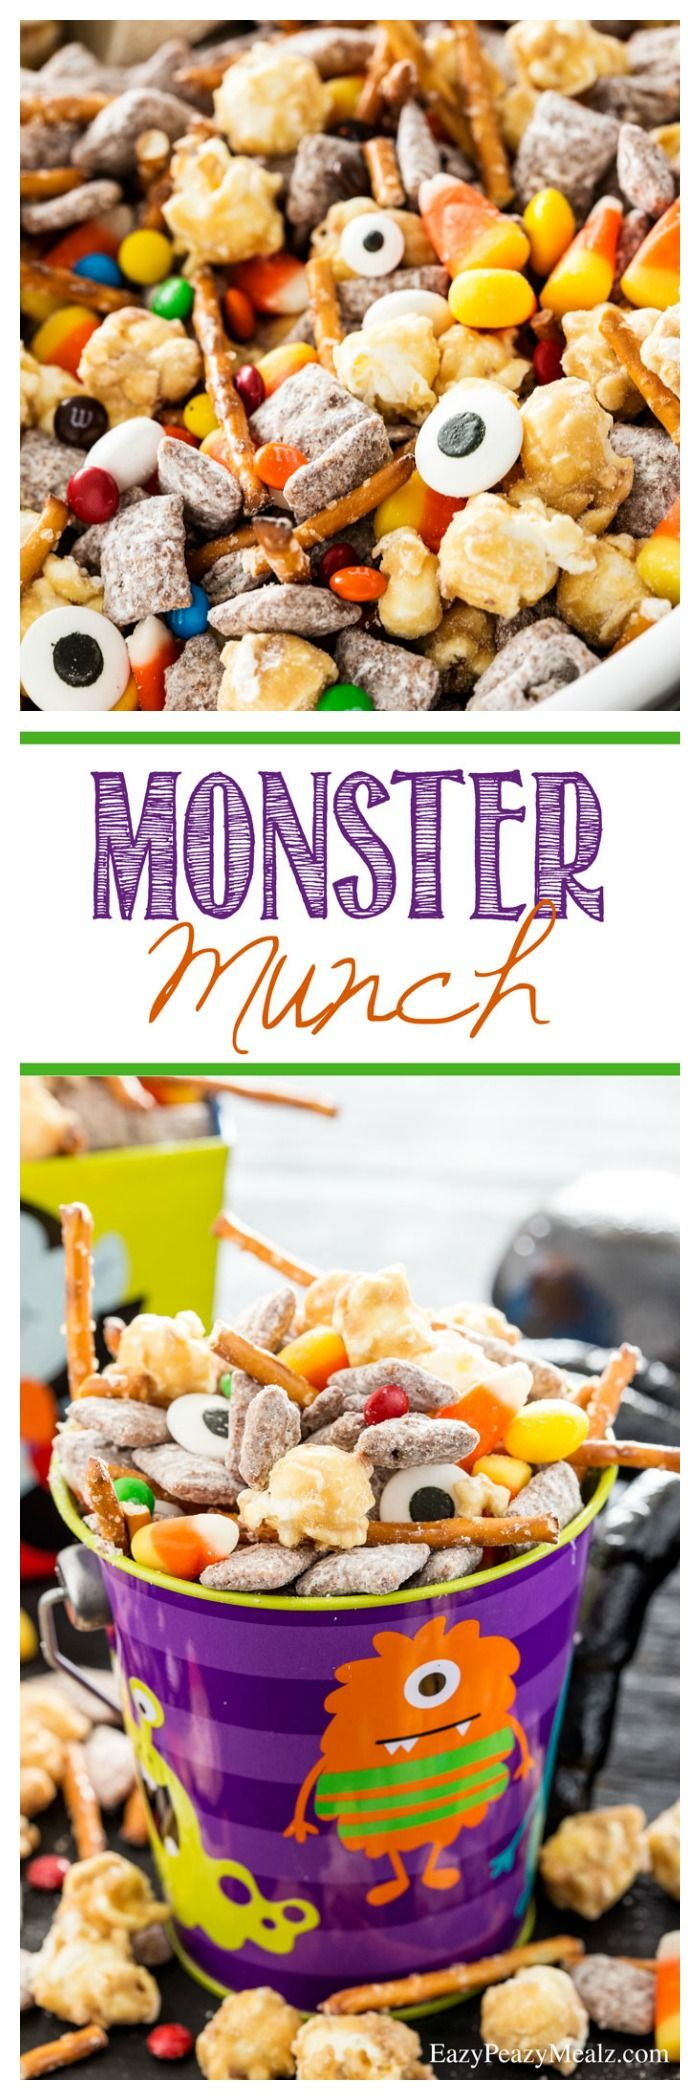 Princess In Black Party: Monster Munch